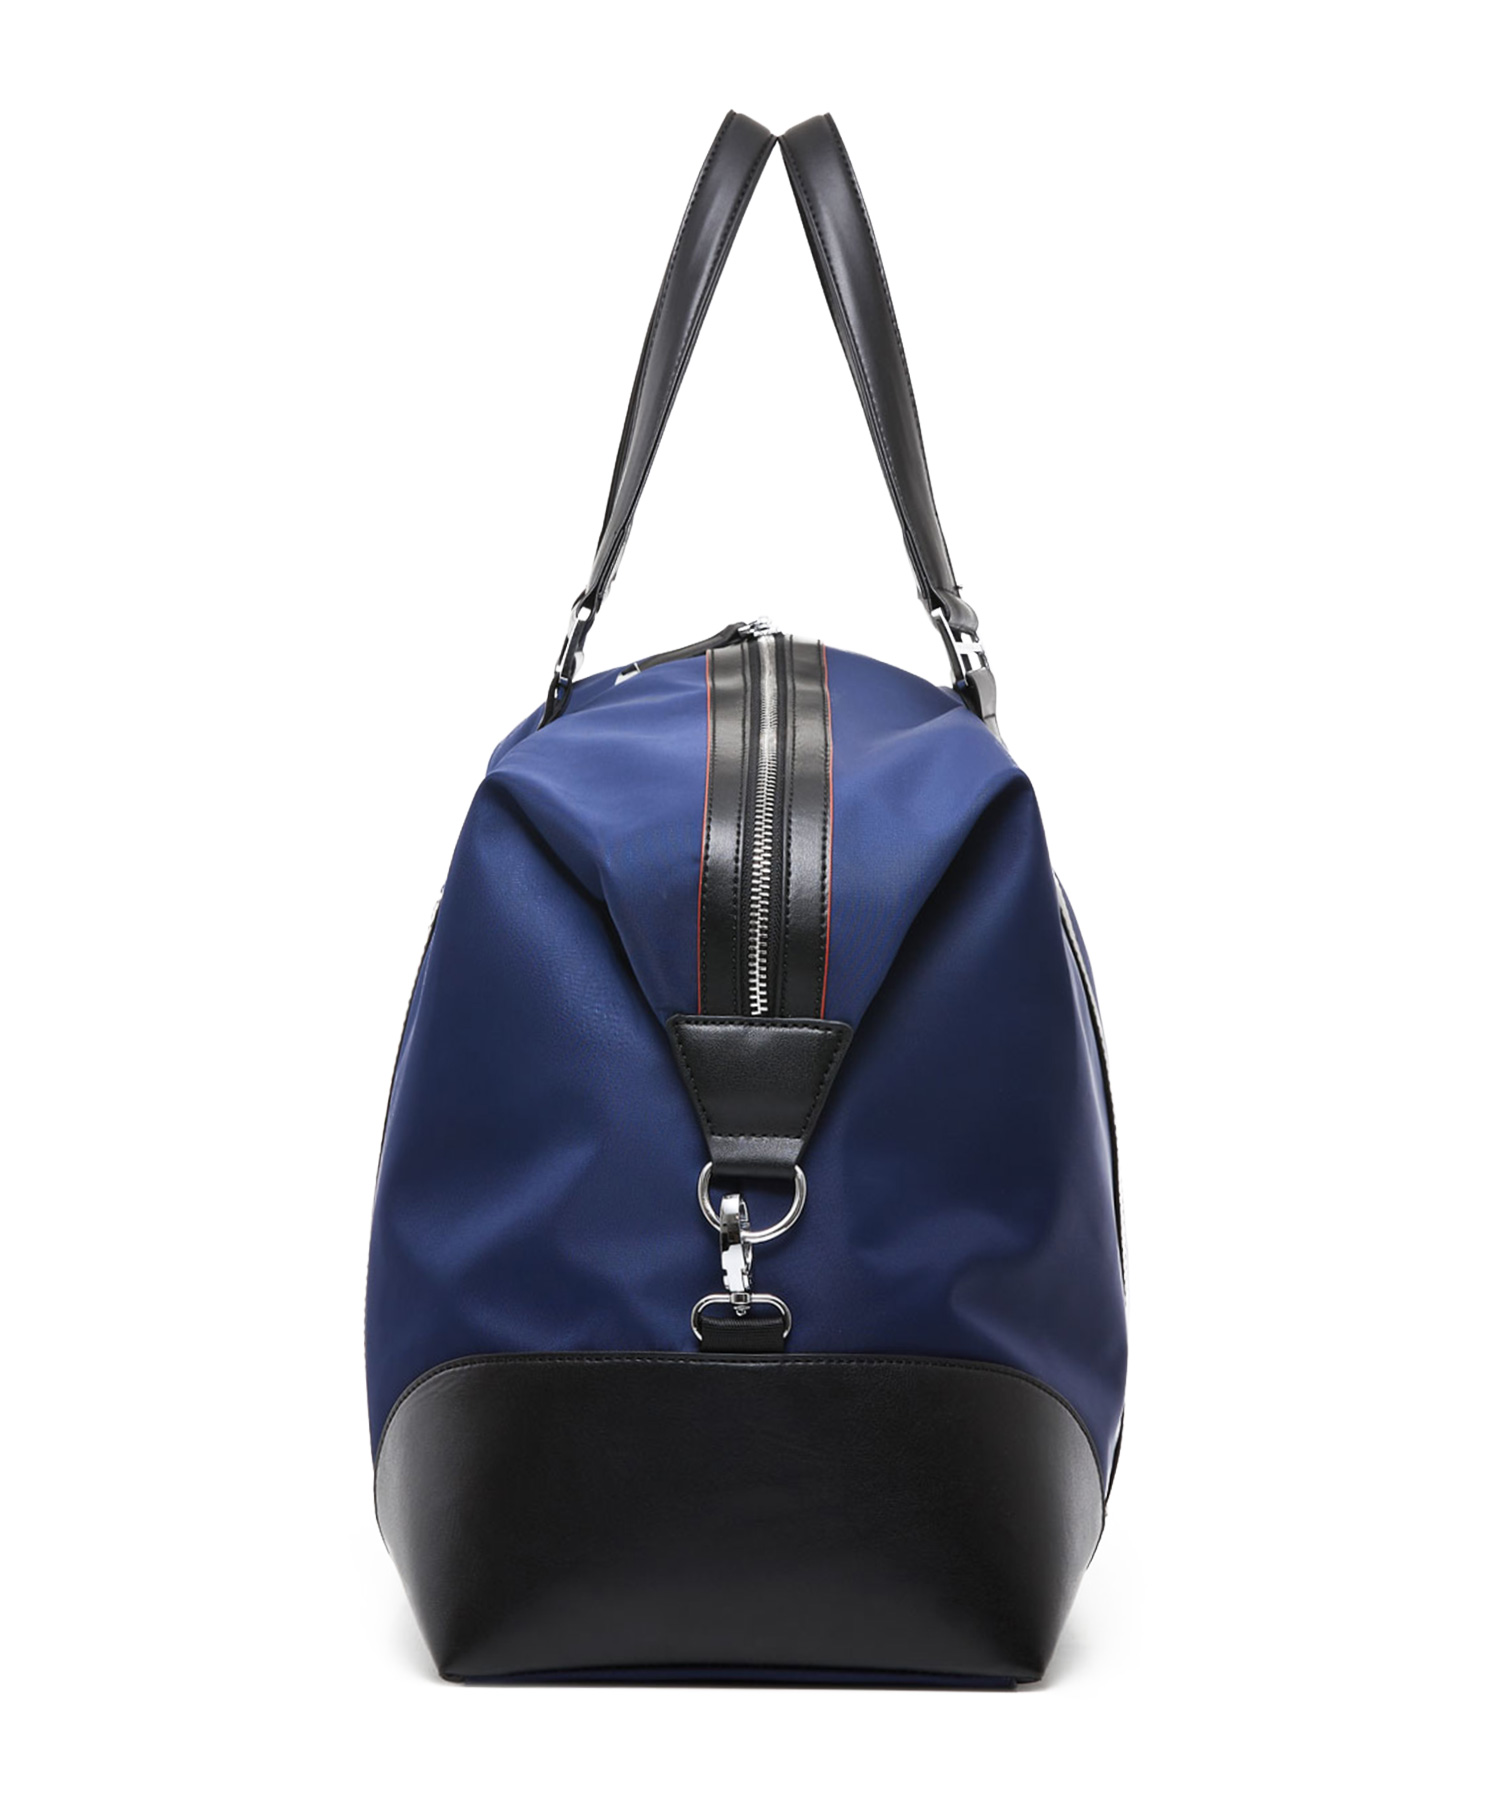 krimcode business duffel bag blue side